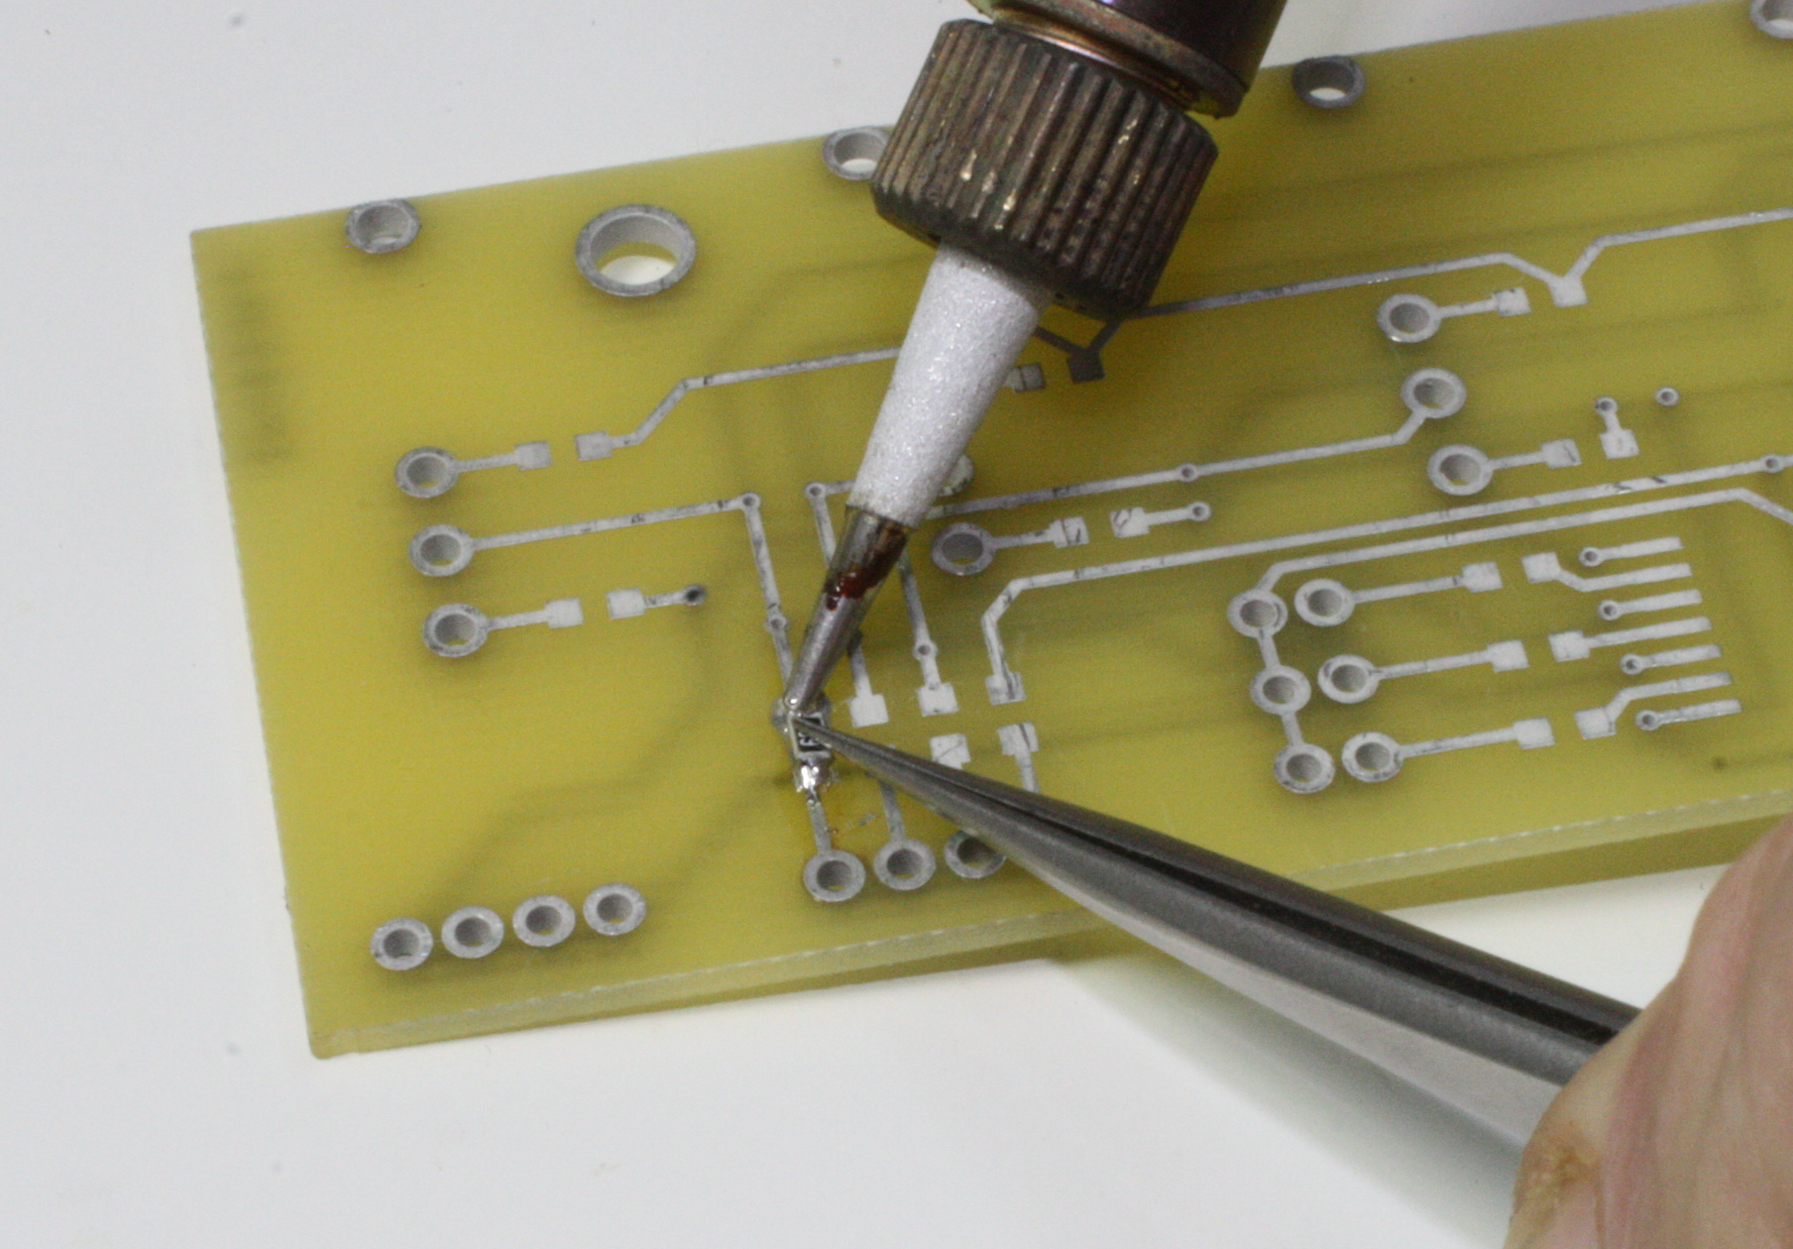 4 Tool Techniques Practical Electronics Components And Copper Braid For Removing Solder From Printed Circuit Boards Soldering One End Of An Smt Resistor